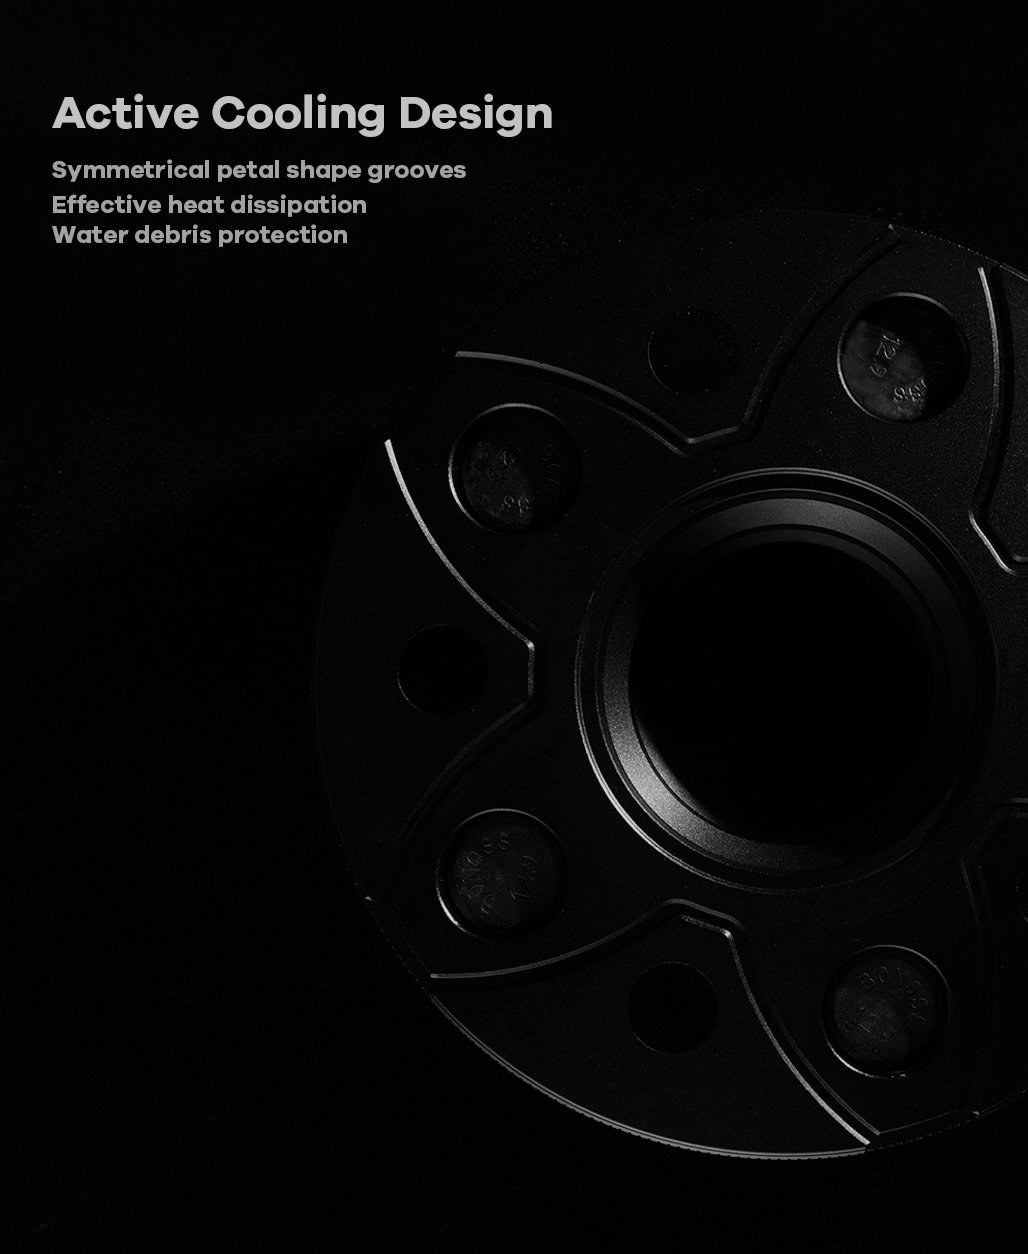 BONOSS Forged Active Cooling Wheel Spacers Hubcentric PCD5x108 CB67.1 AL6061-T6 for MG XPower SV 2003-2008 (3)